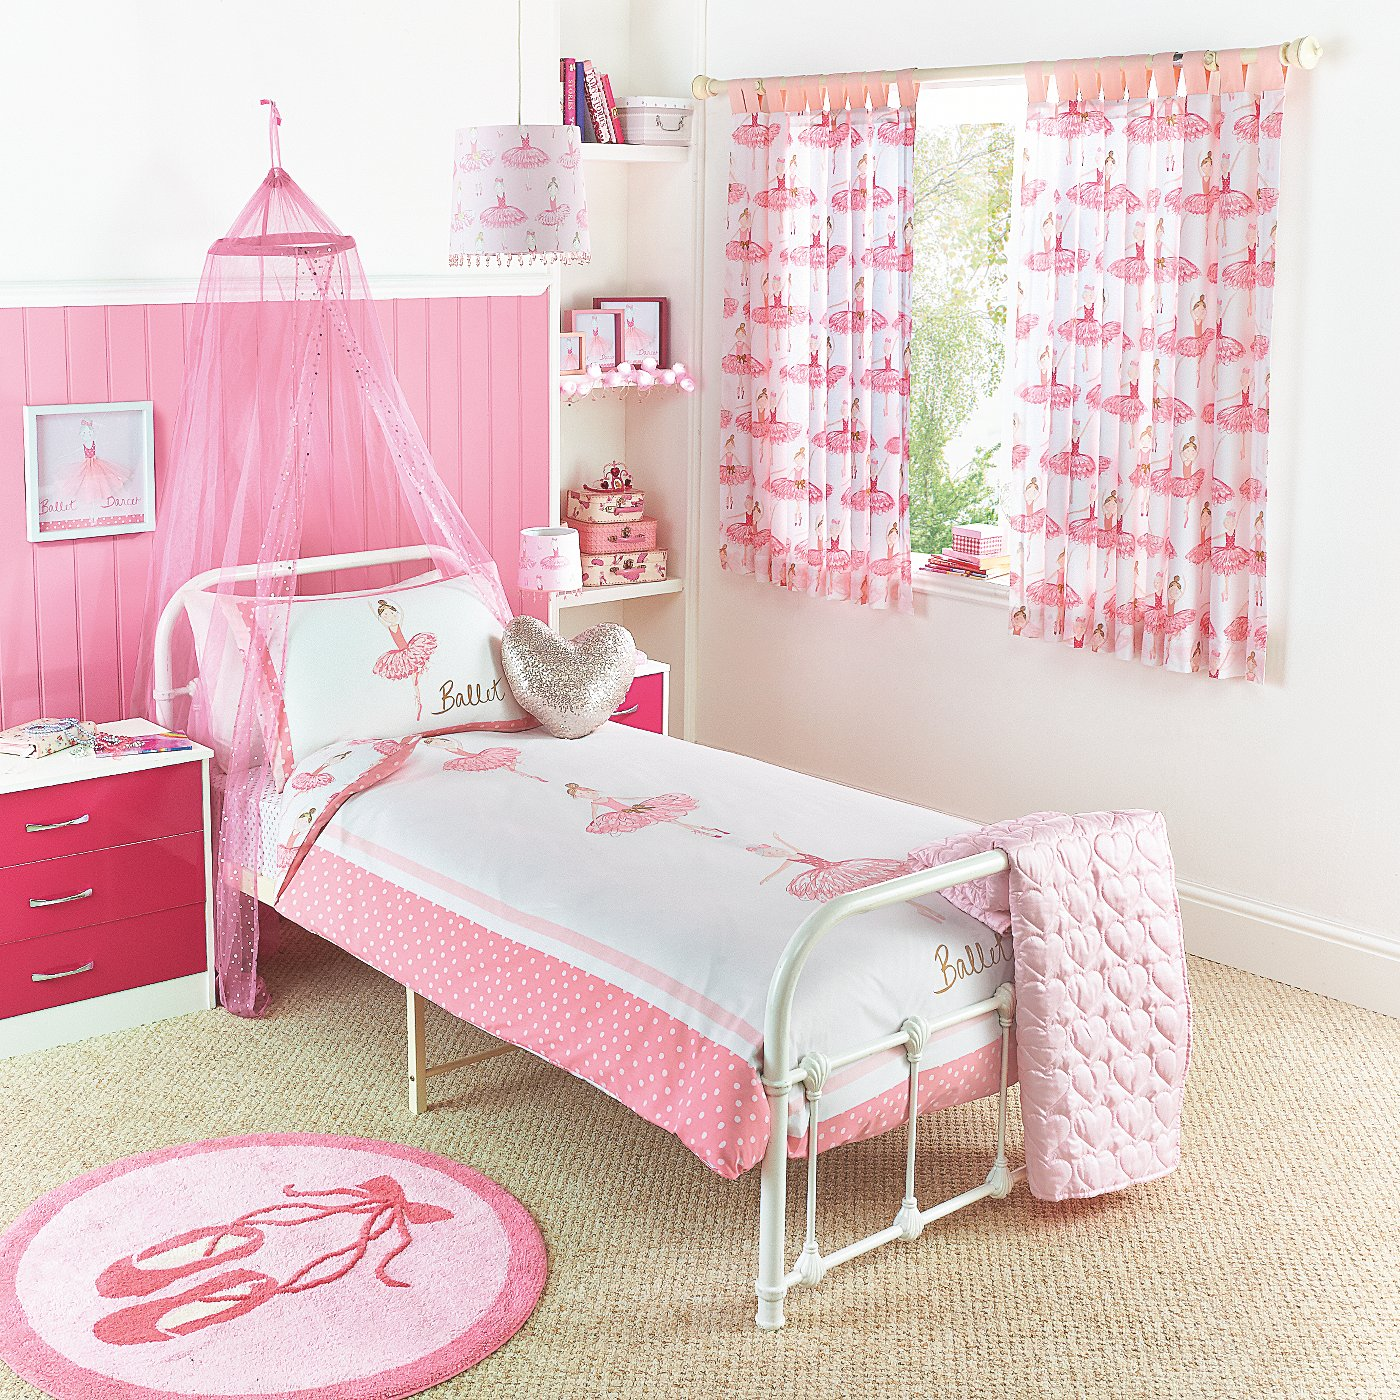 Pony Bedroom Accessories George Home Ballet Bedroom Range Bedding George At Asda